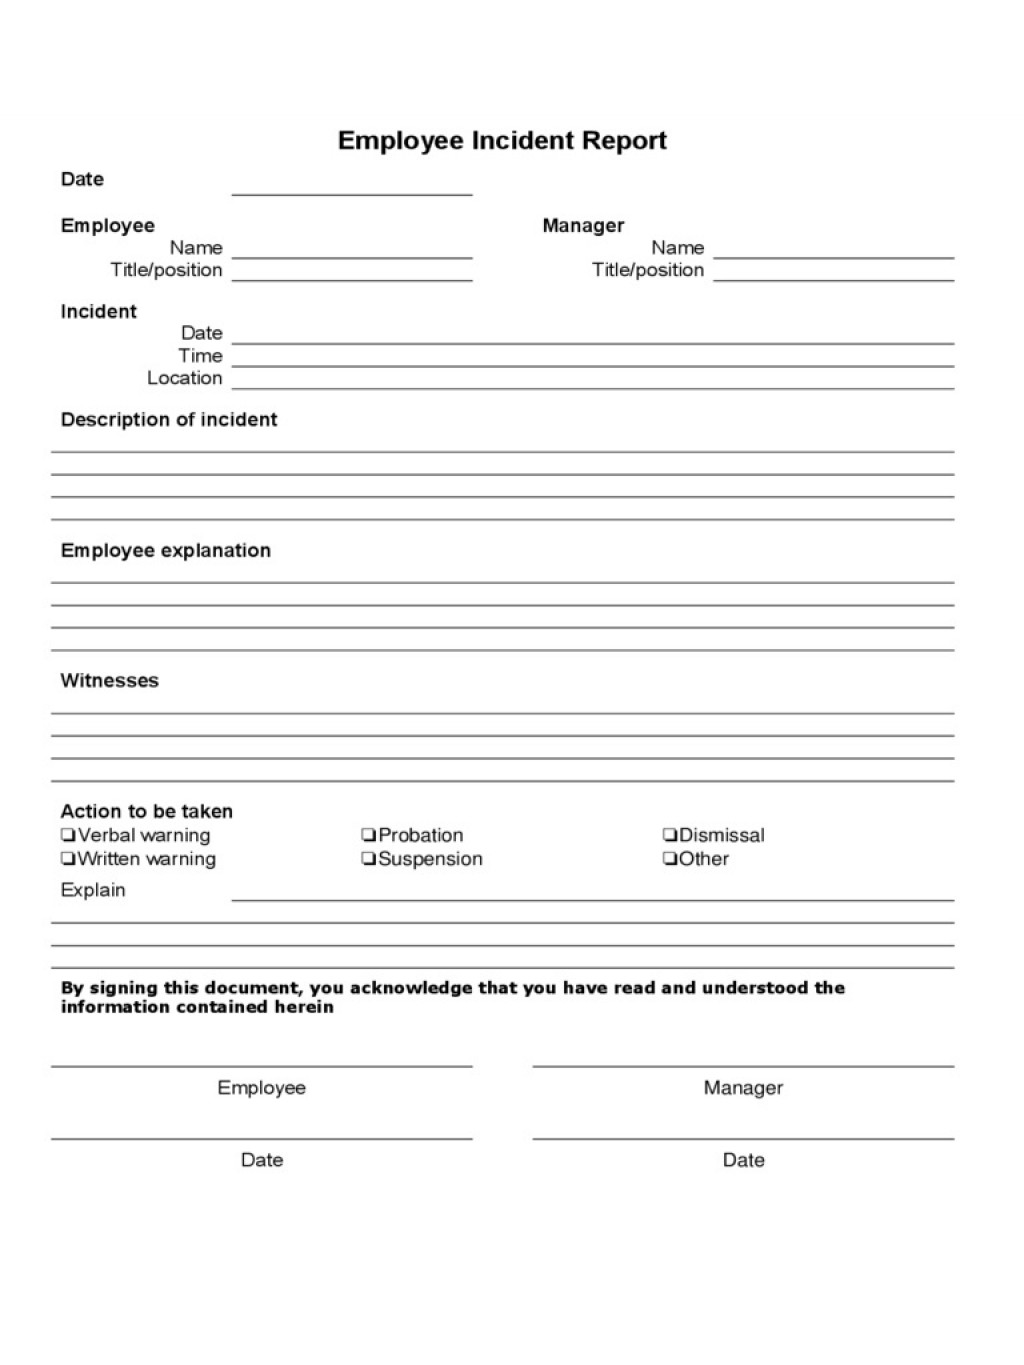 Incident Report Form Template Word Employee  Downloadable FreeLarge